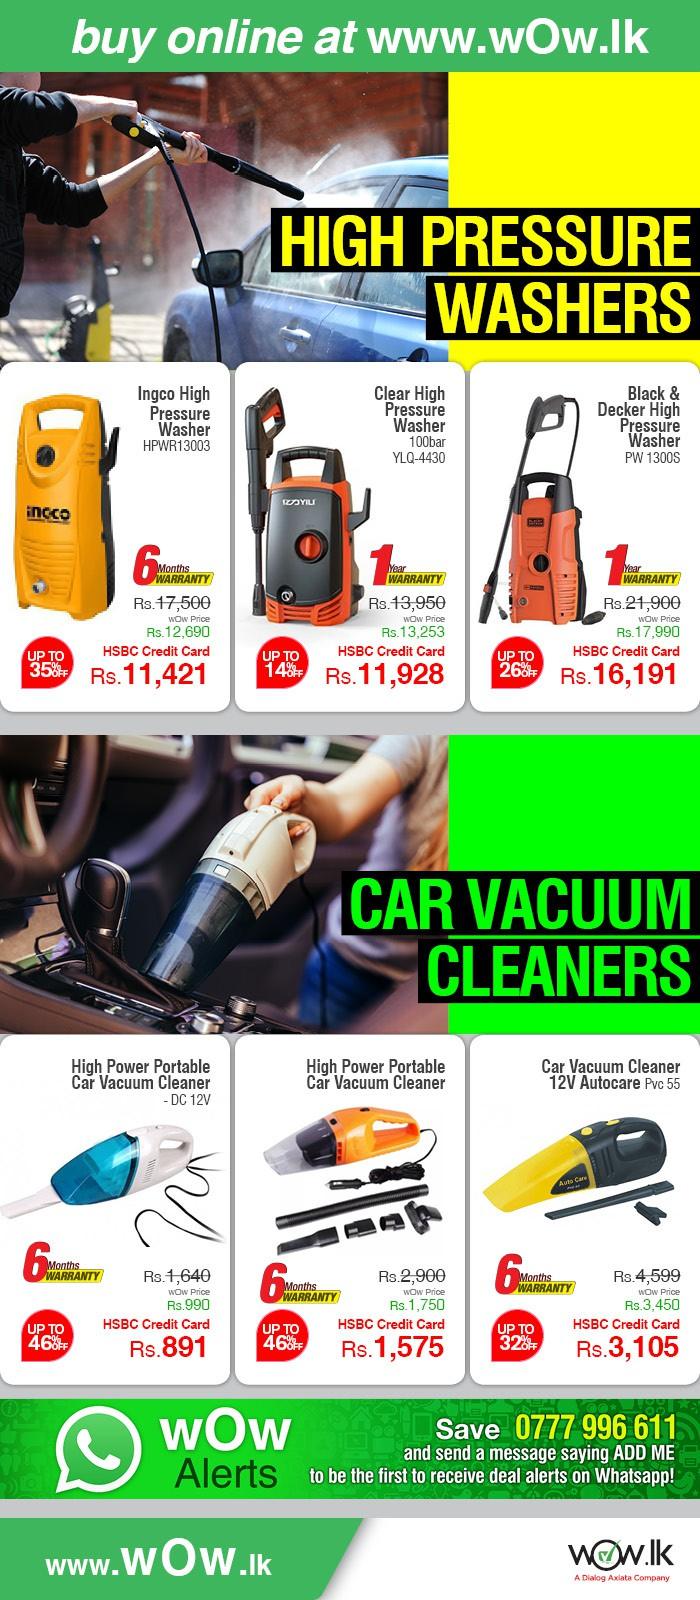 http://www.wow.lk/mall/buyonline/automotive/?Ns=sku.inventoryAvailability%7C0&utm_source=dailymail&utm_medium=newsletter&utm_campaign=Highpressurewashersandvacuumcleaners